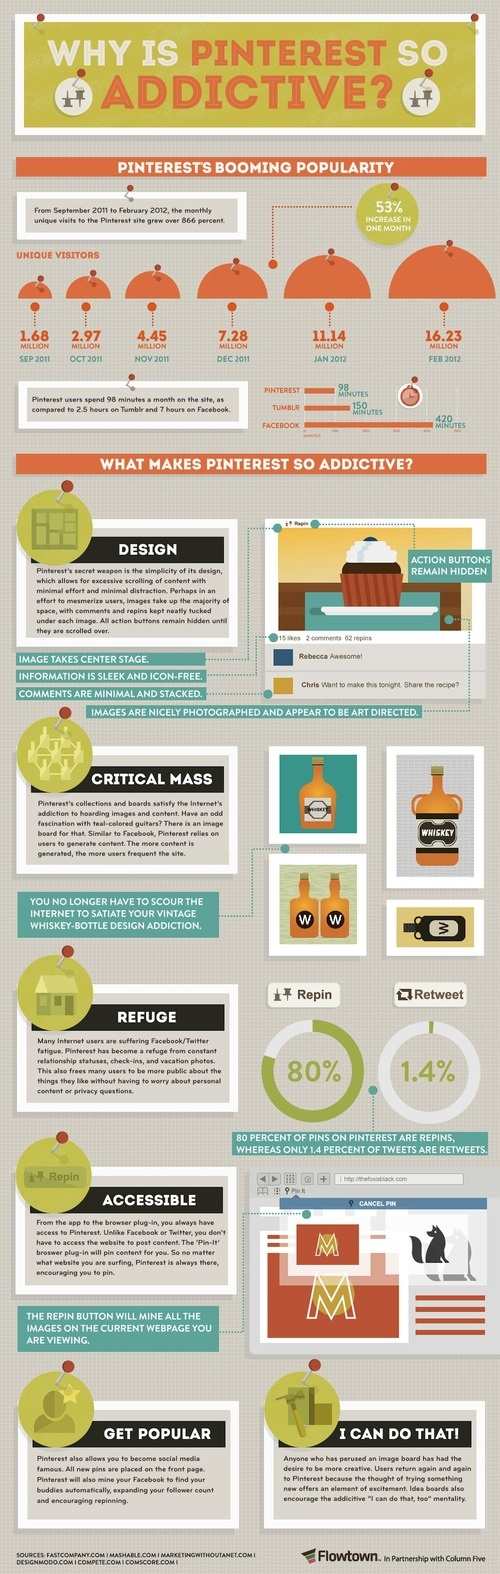 Why Pinterest is so addictive? Now I understand much better why I can't stop pinning! :)Social Network, Social Media Marketing, Digital Marketing, Internet Marketing, Zombies Apocalyps, Pinterest Addict, New Products, Infographic, Socialmedia